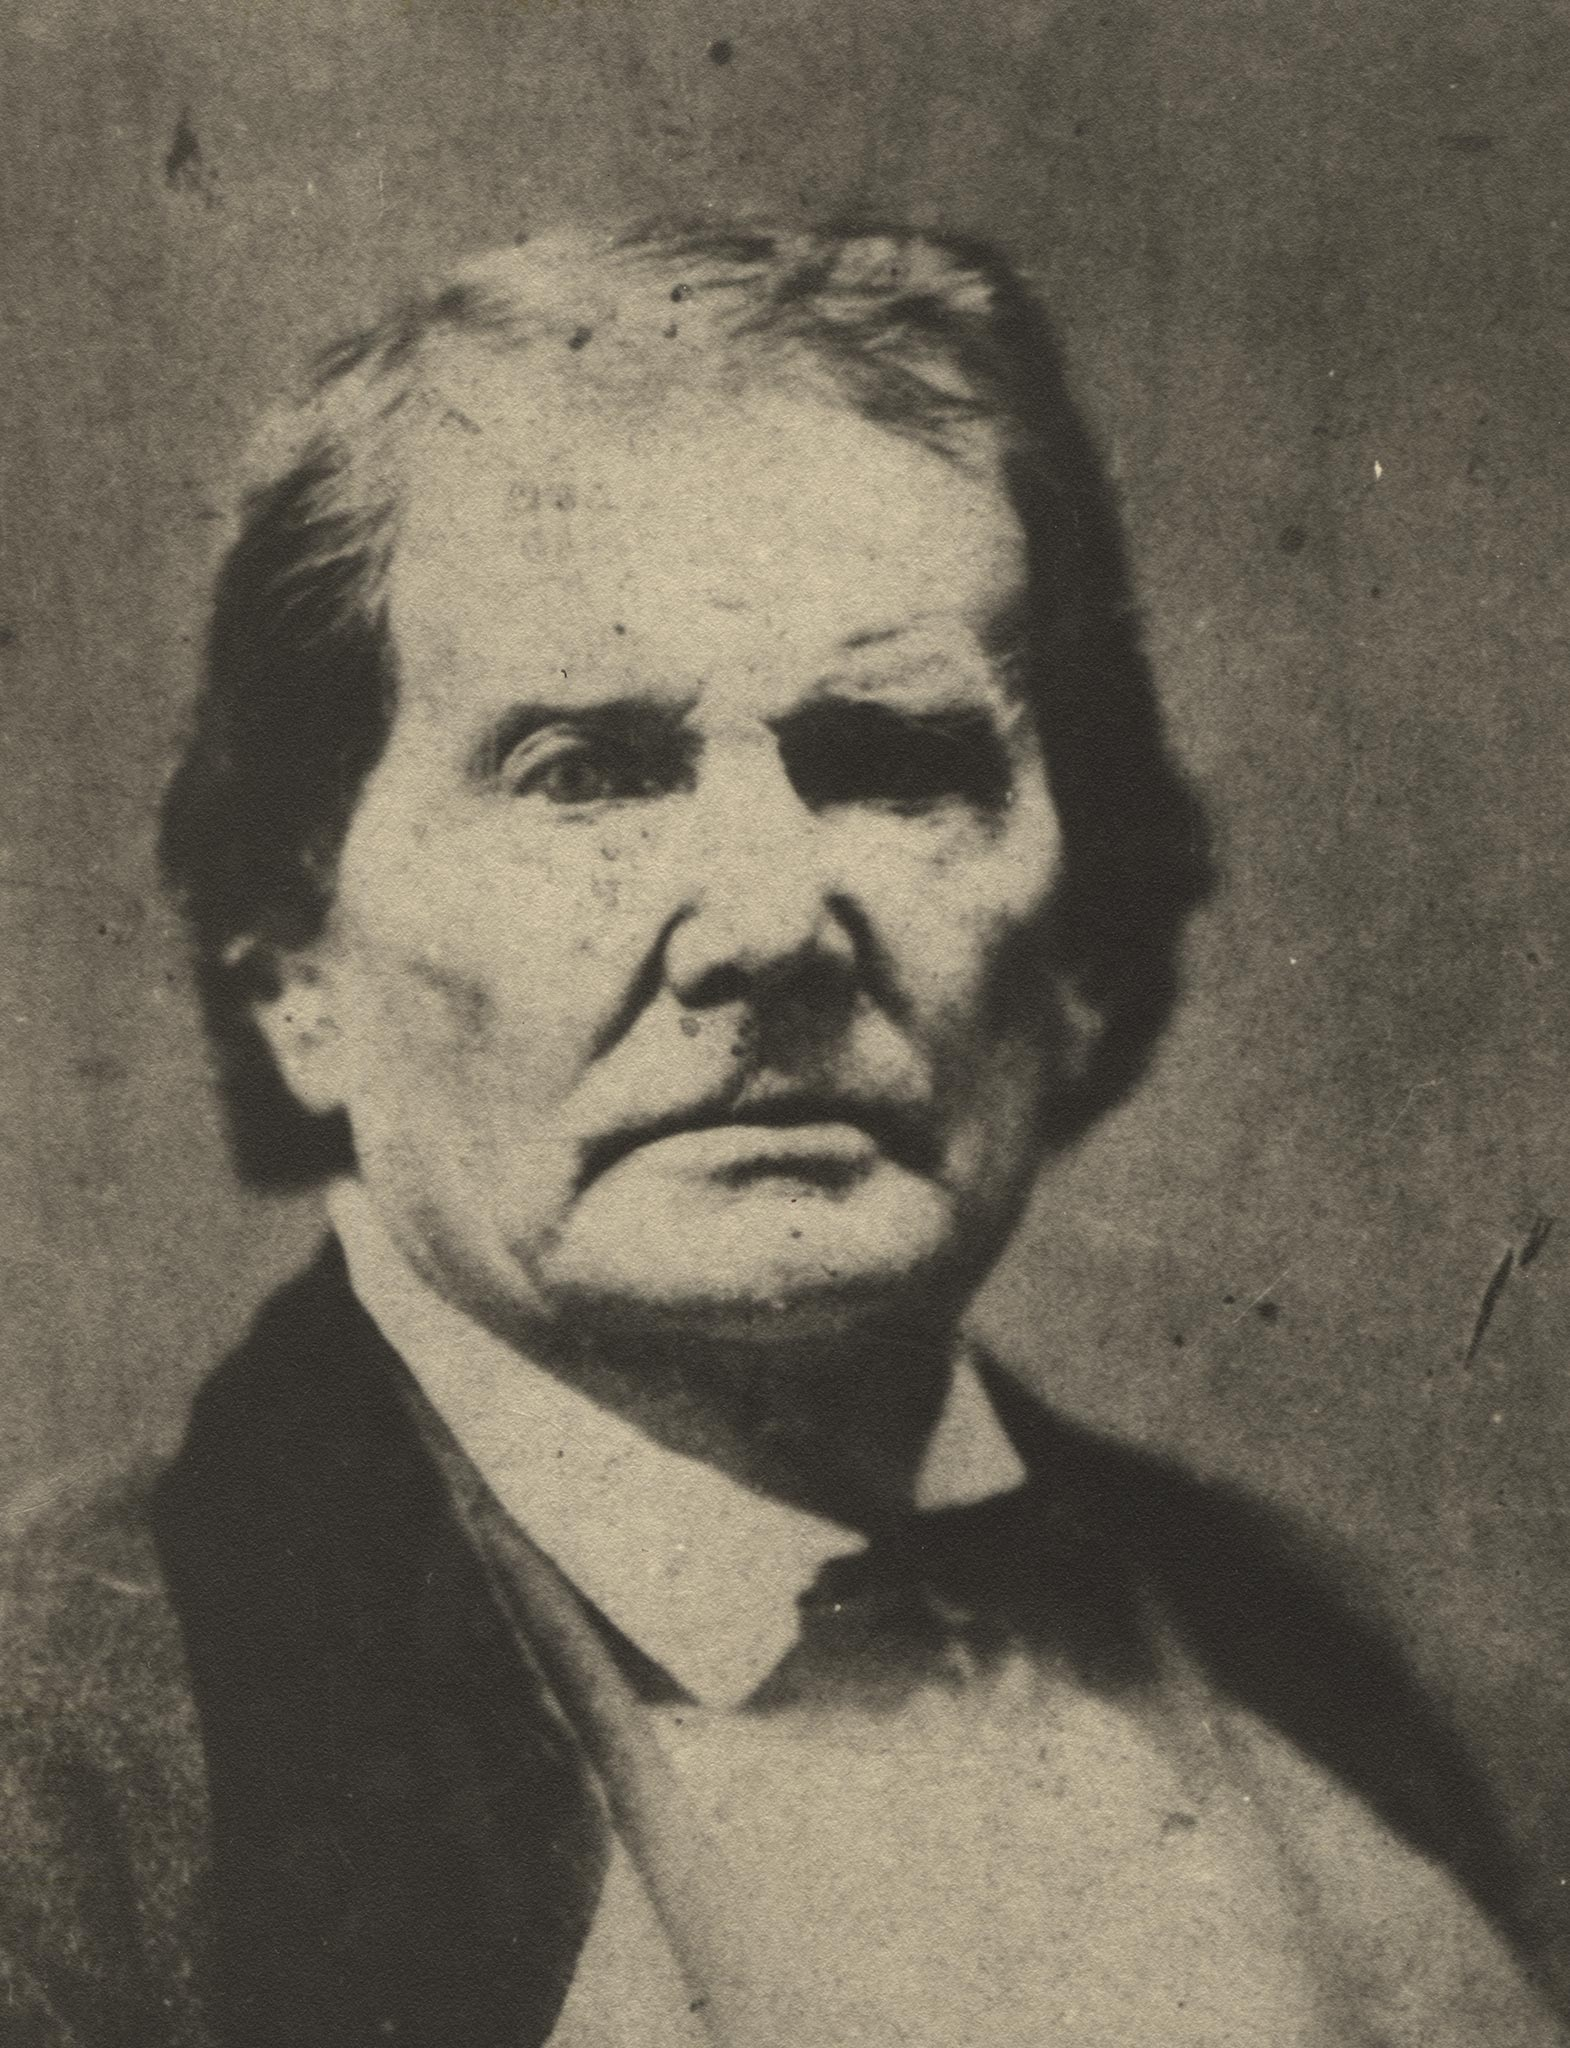 Abraham Lincoln's father